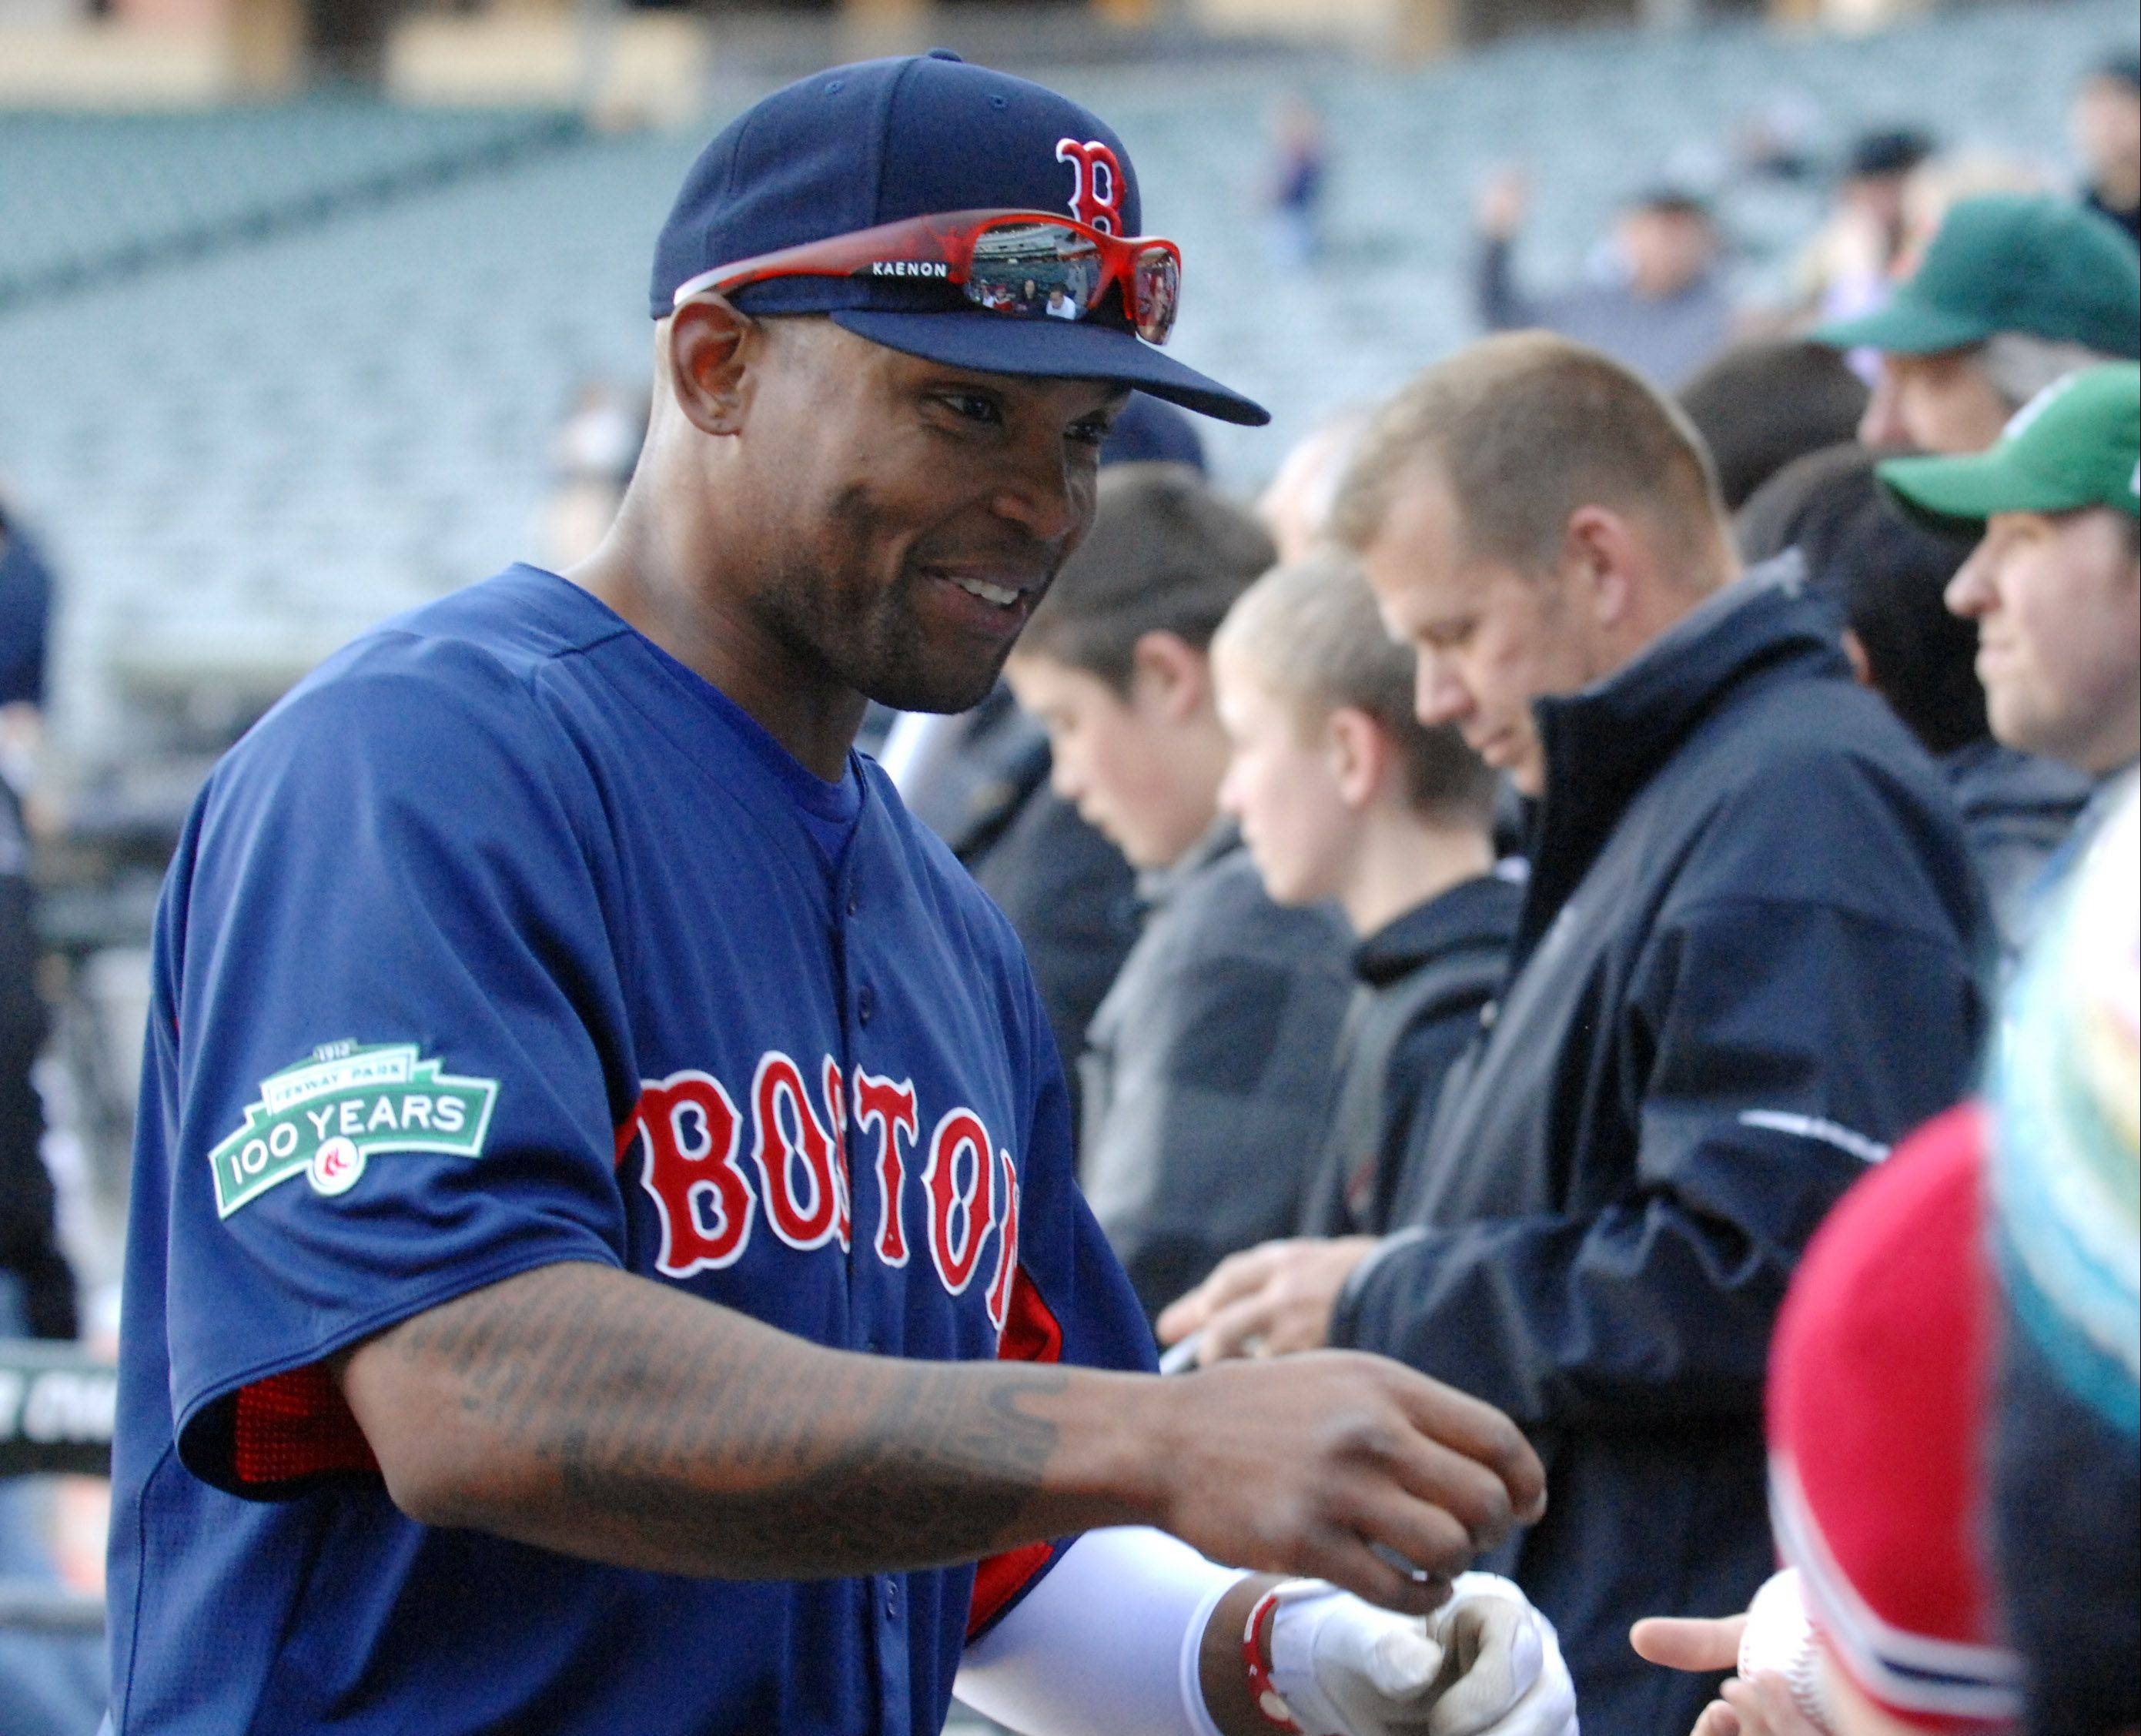 Former Cubs outfielder Marlon Byrd, who was traded to the Red Sox on Saturday, signs autographs before Thursday's game against the White Sox at U.S. Cellular Field.